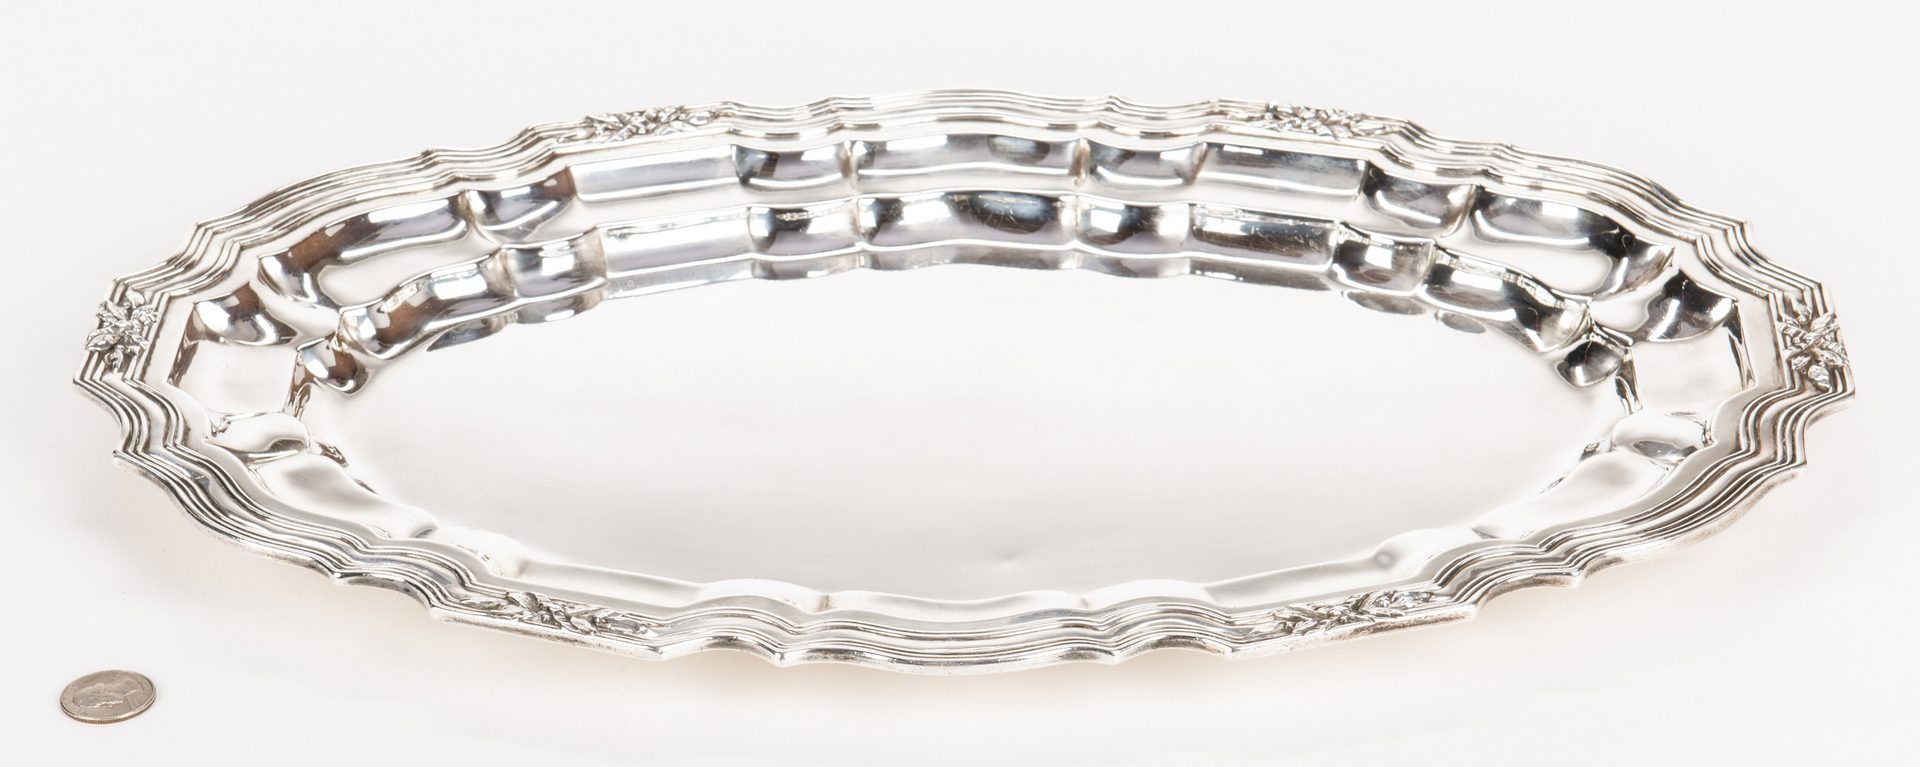 Lot 302: Howard & Co. Oval Sterling Silver Tray